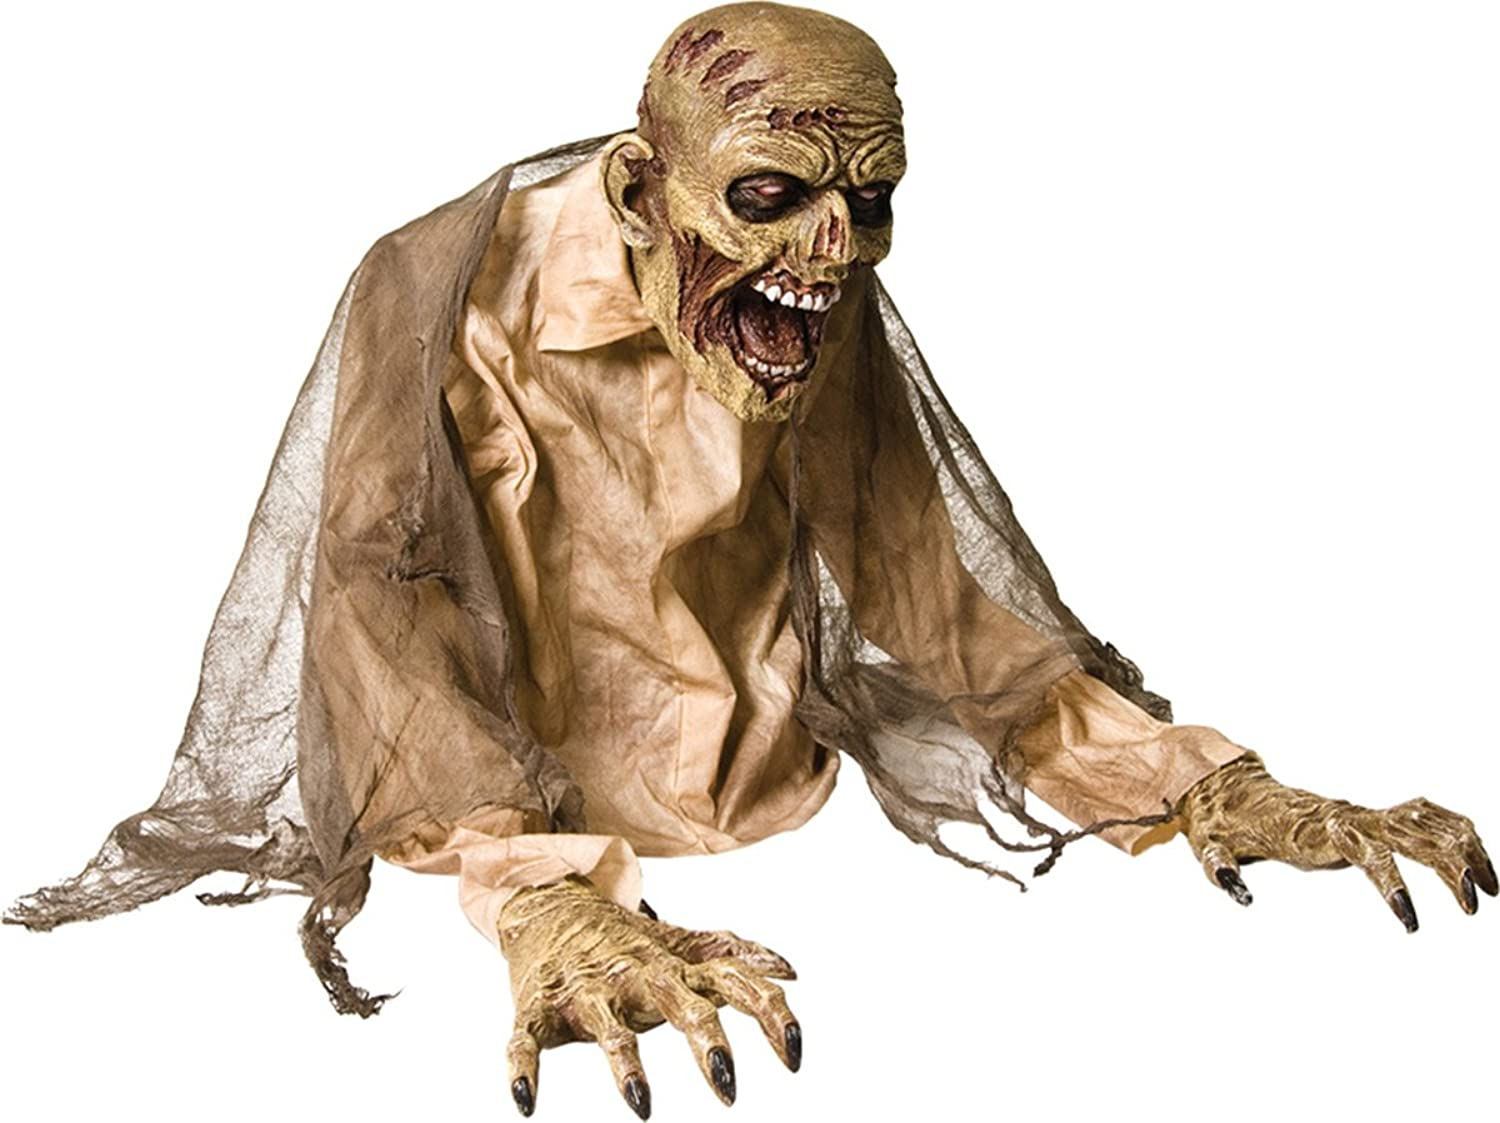 amazoncom morris costumes gaseous zombie animated fog toys games - Animated Halloween Decorations